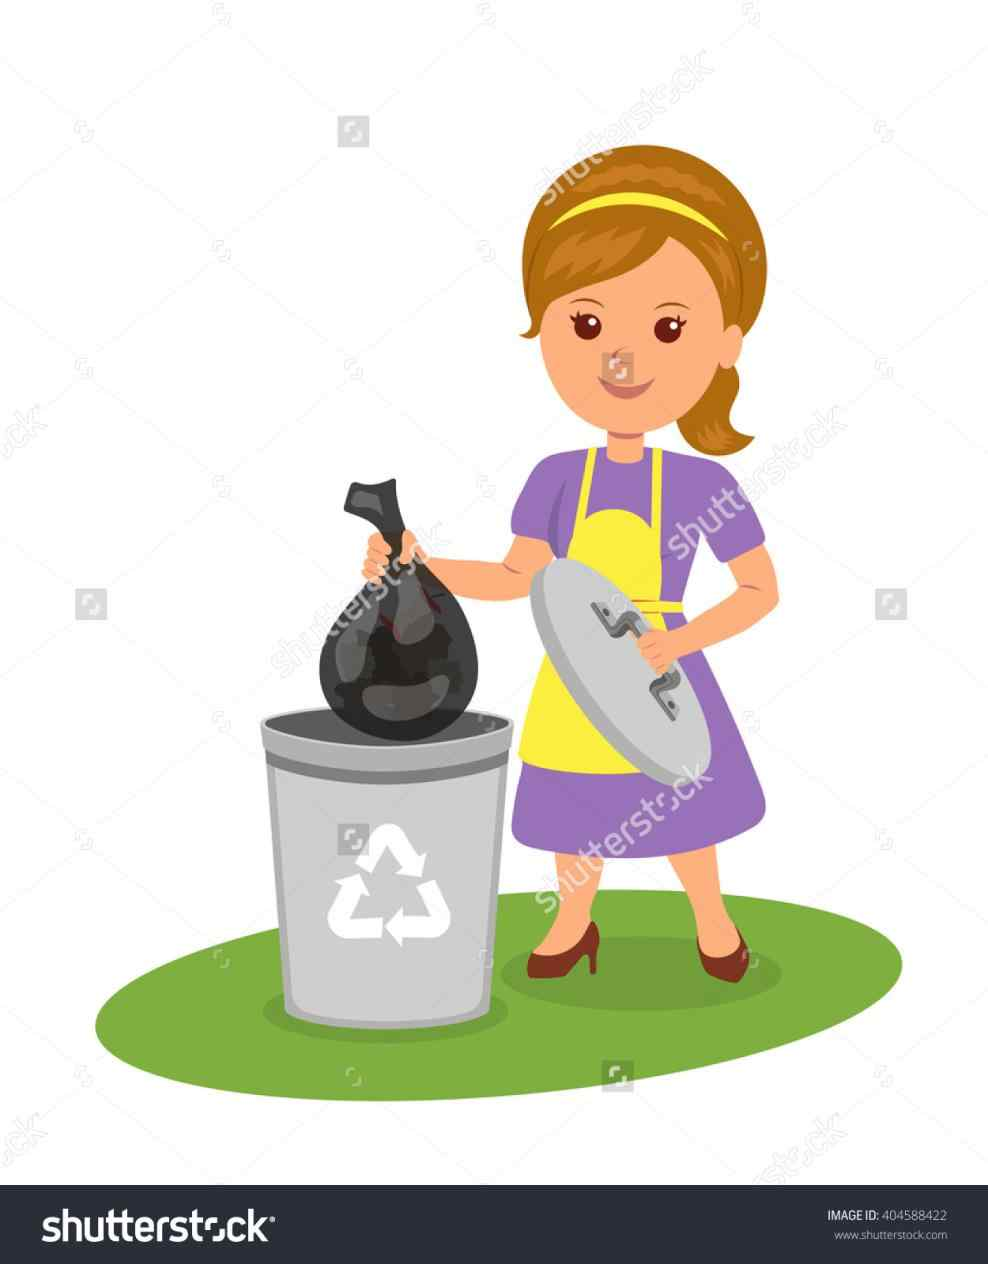 Take out trash clipart 3 » Clipart Station.